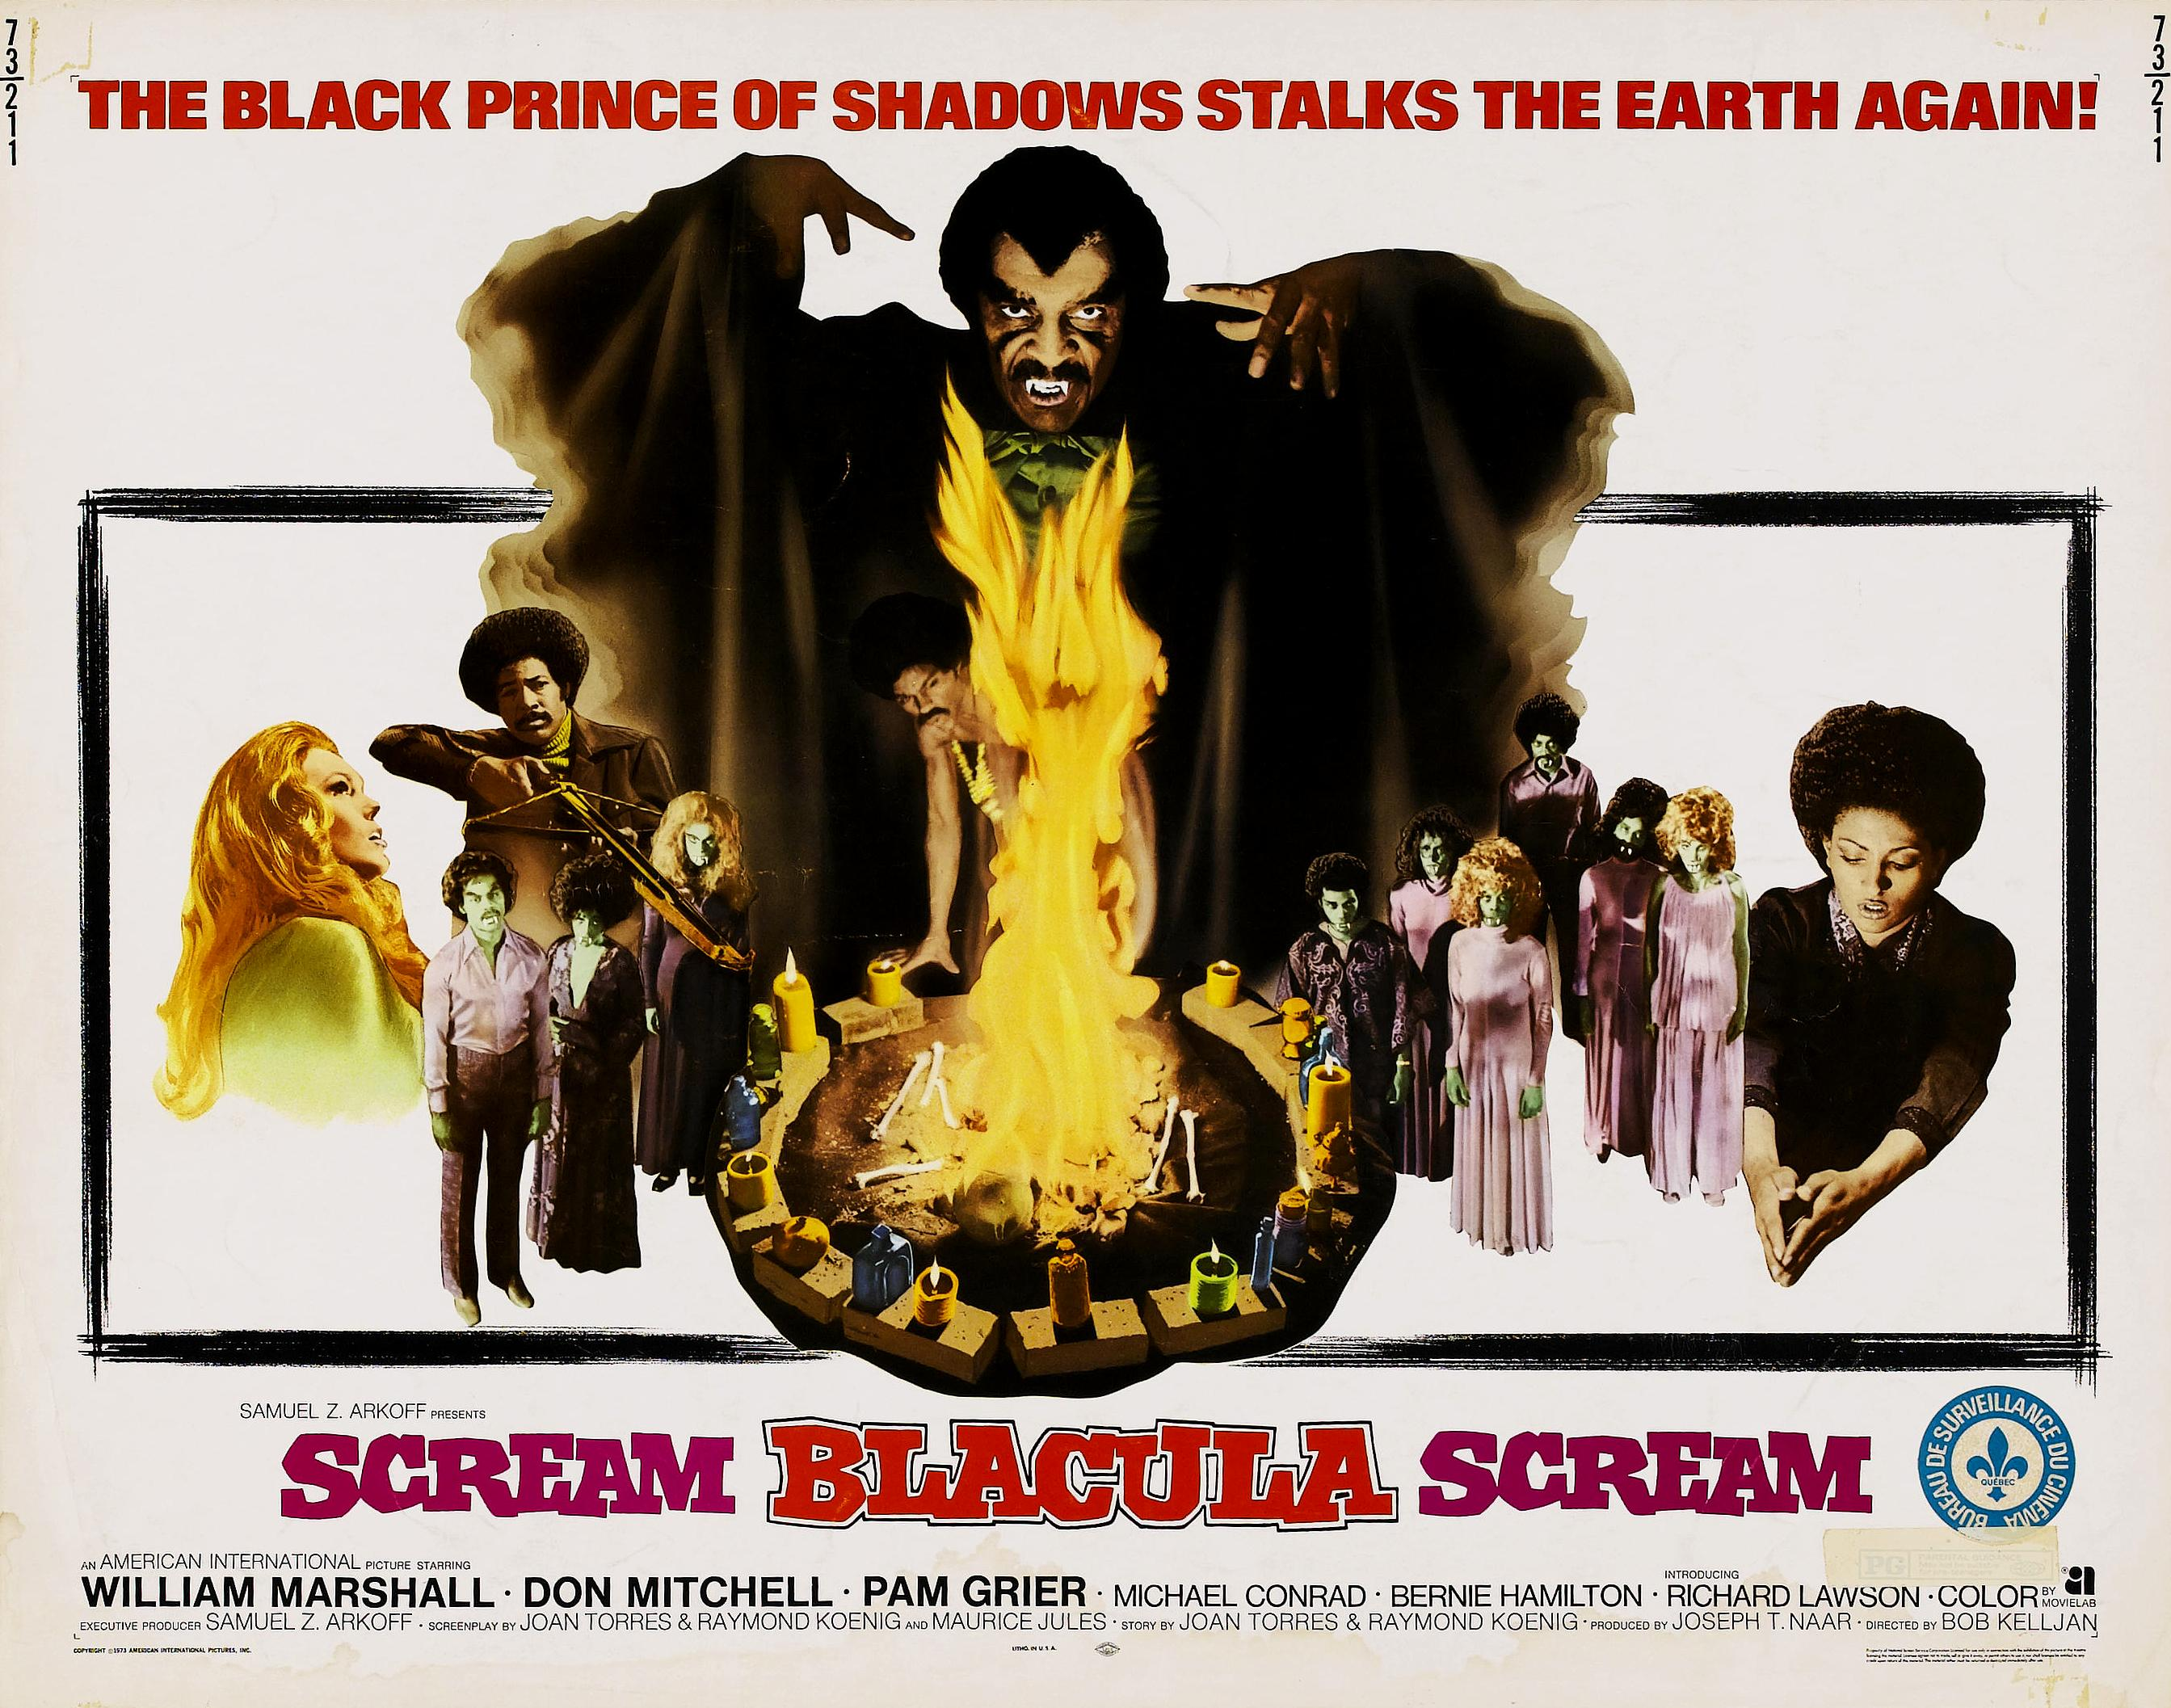 Scream Blacula Scream 1973 Bob Kelljan Ian Farrington 2687x2114